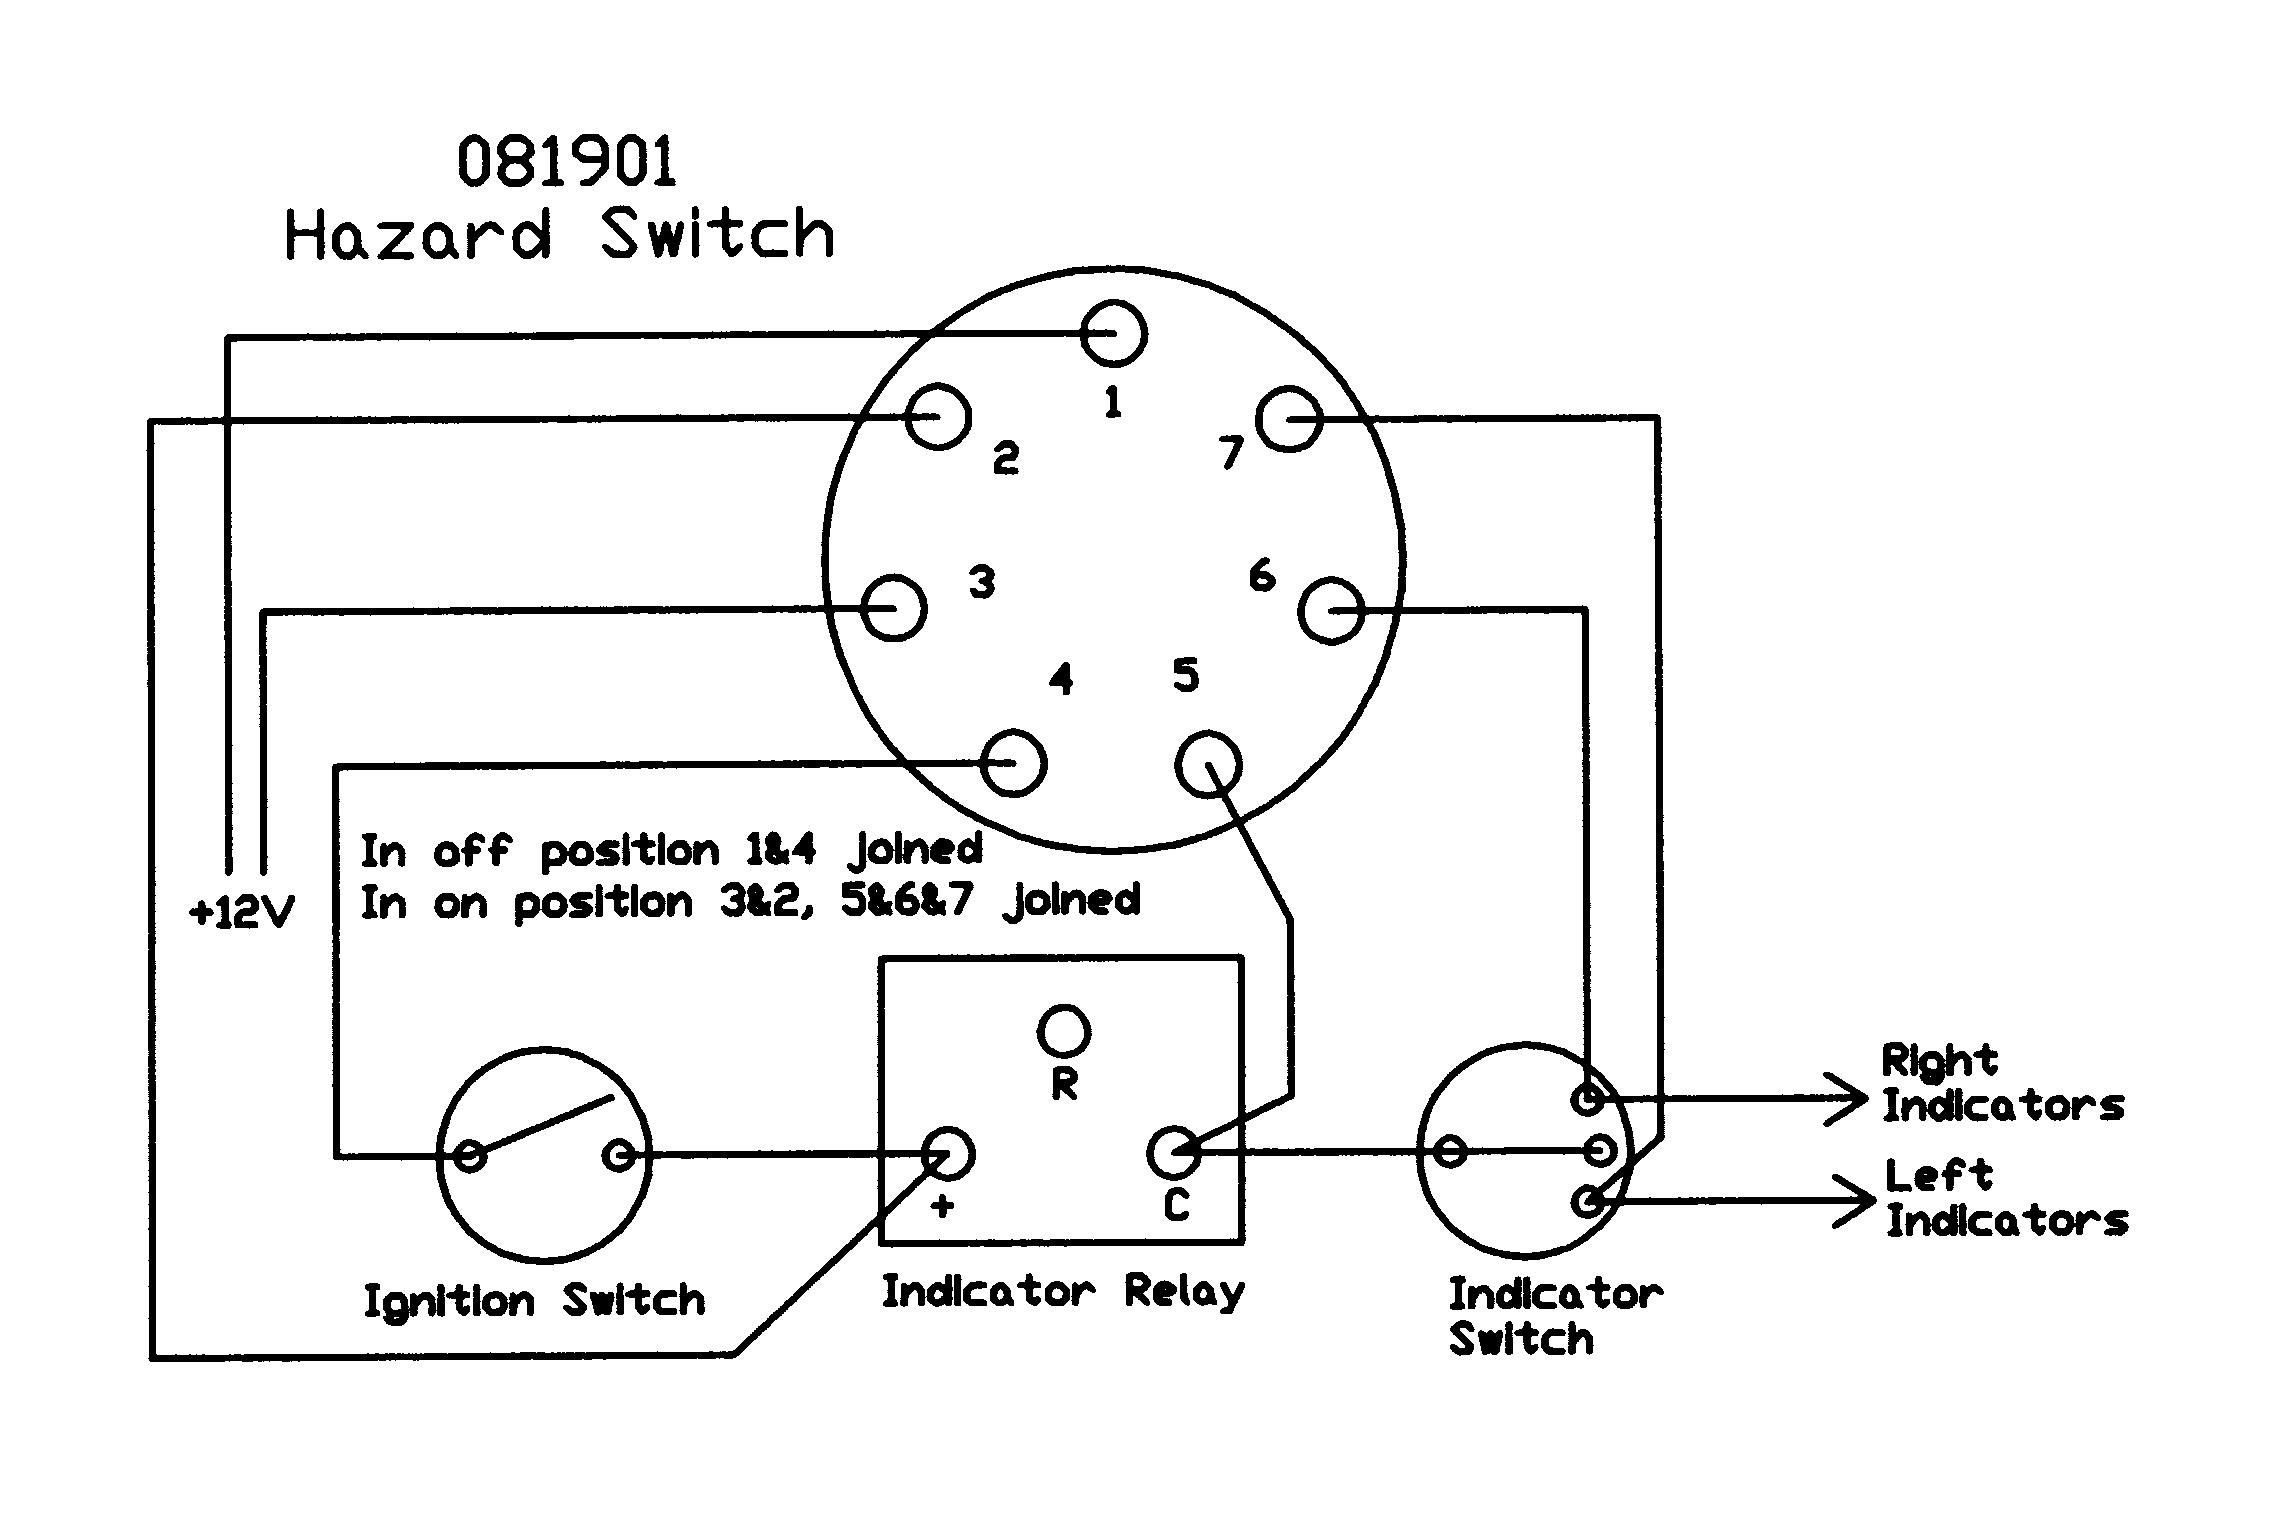 081901_wiring_diagram 28 [ lucas light switch wiring diagram ] wiring diagram for 3 position ignition switch wiring diagram at n-0.co